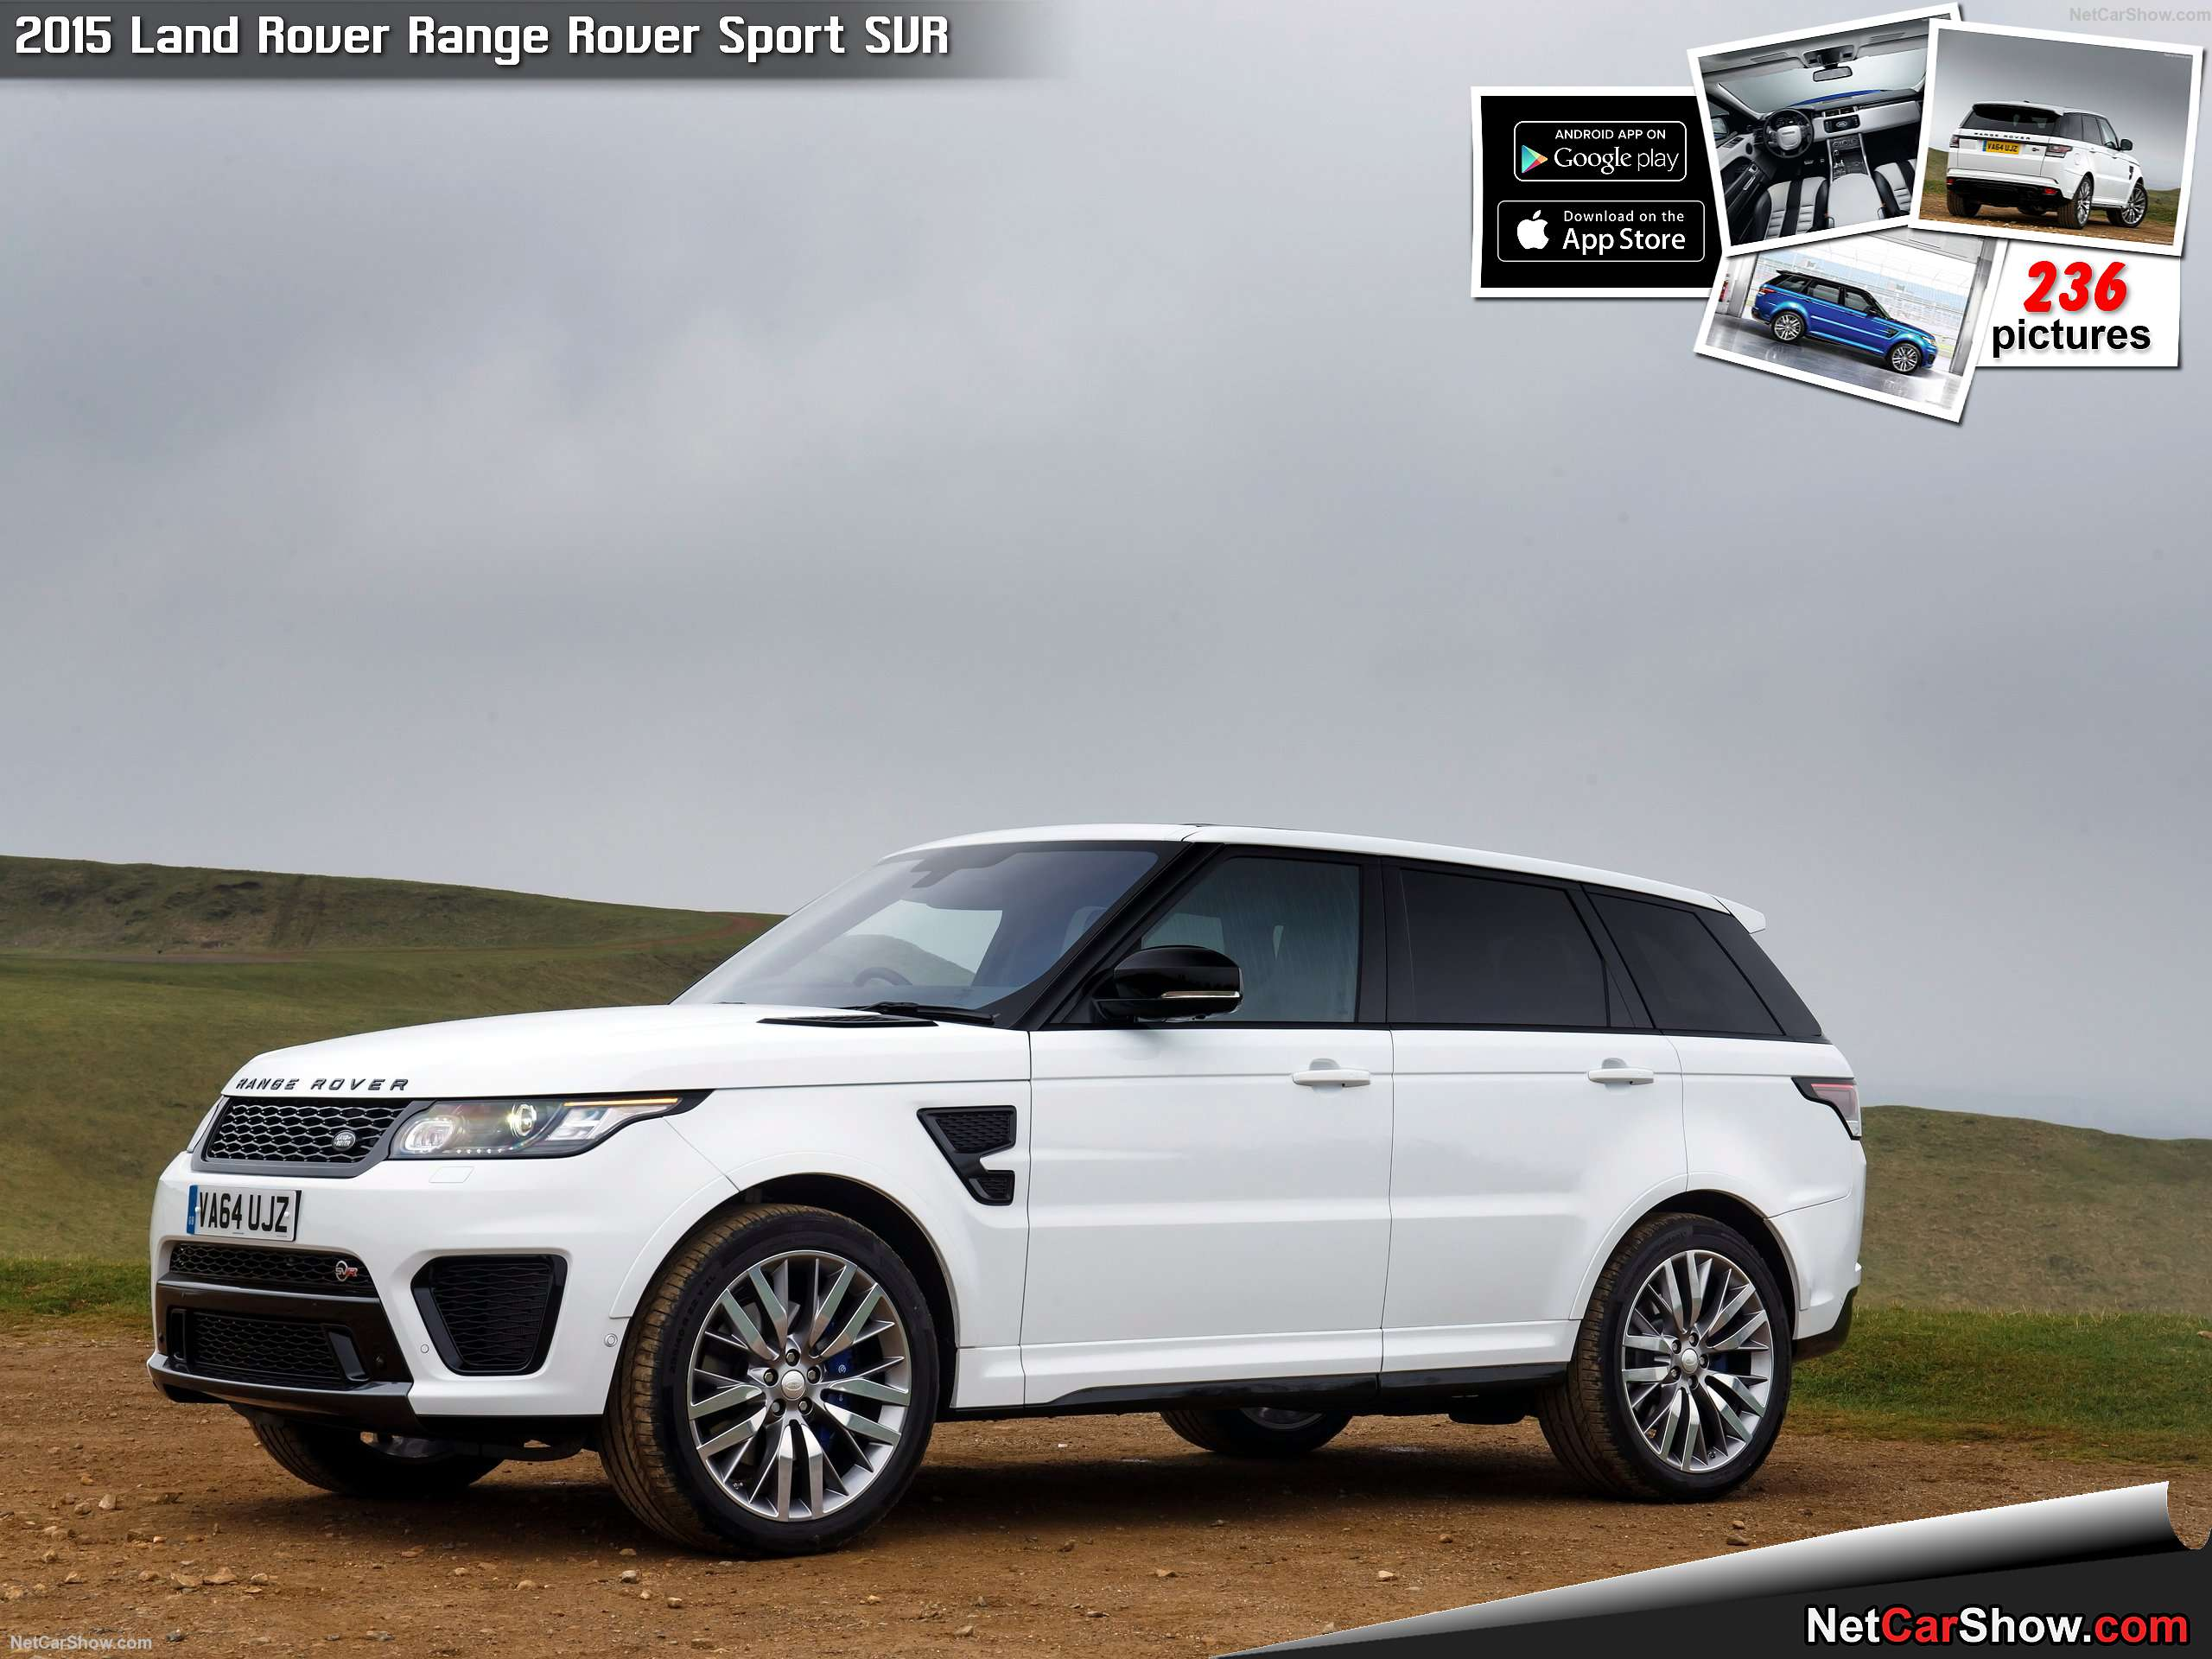 Land Rover Vs Range Rover Comparison Ford Escape 2016 Vs Land Rover Range